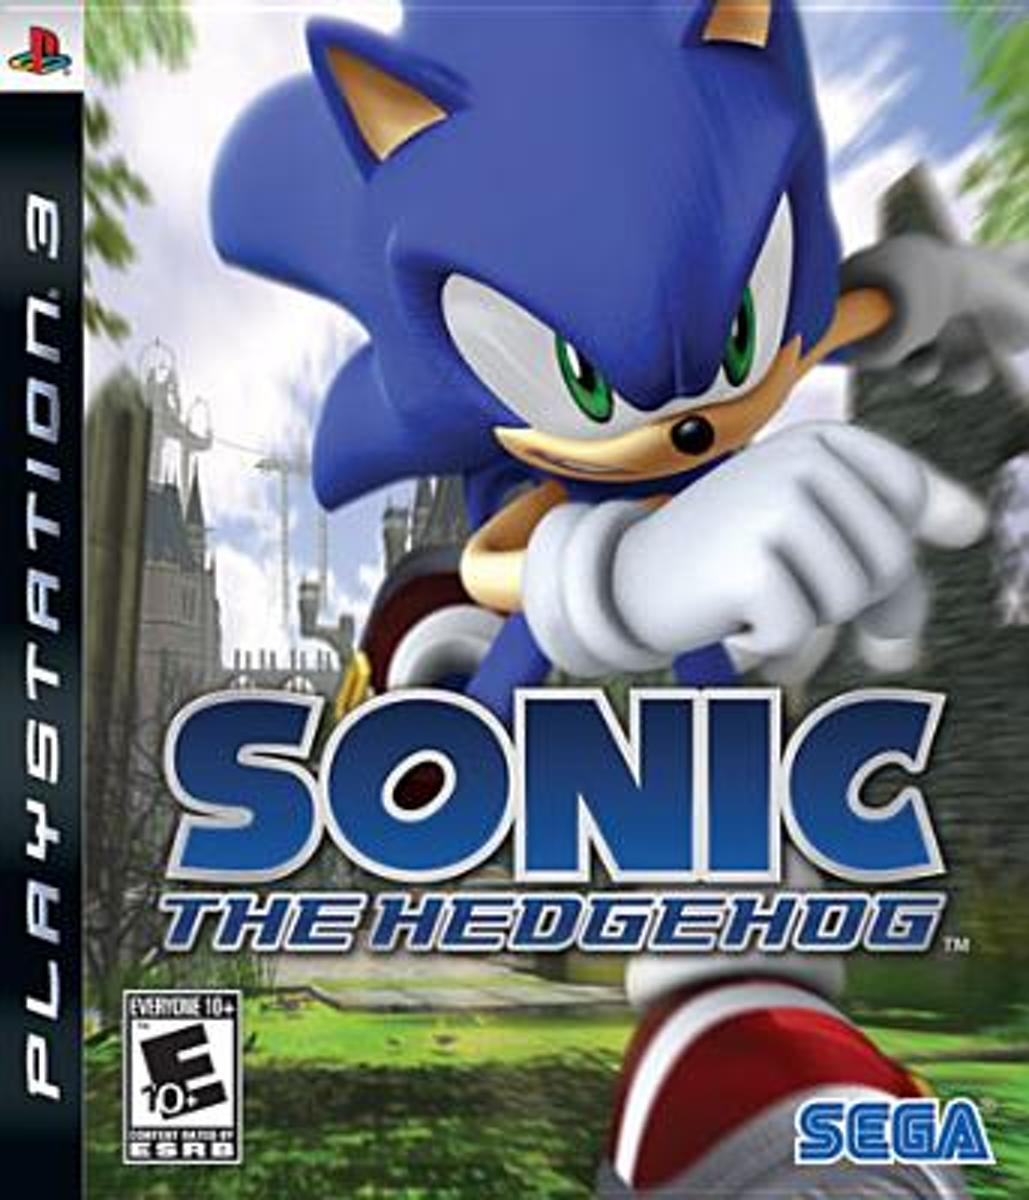 Sonic the Hedgehog - PS3 (US)